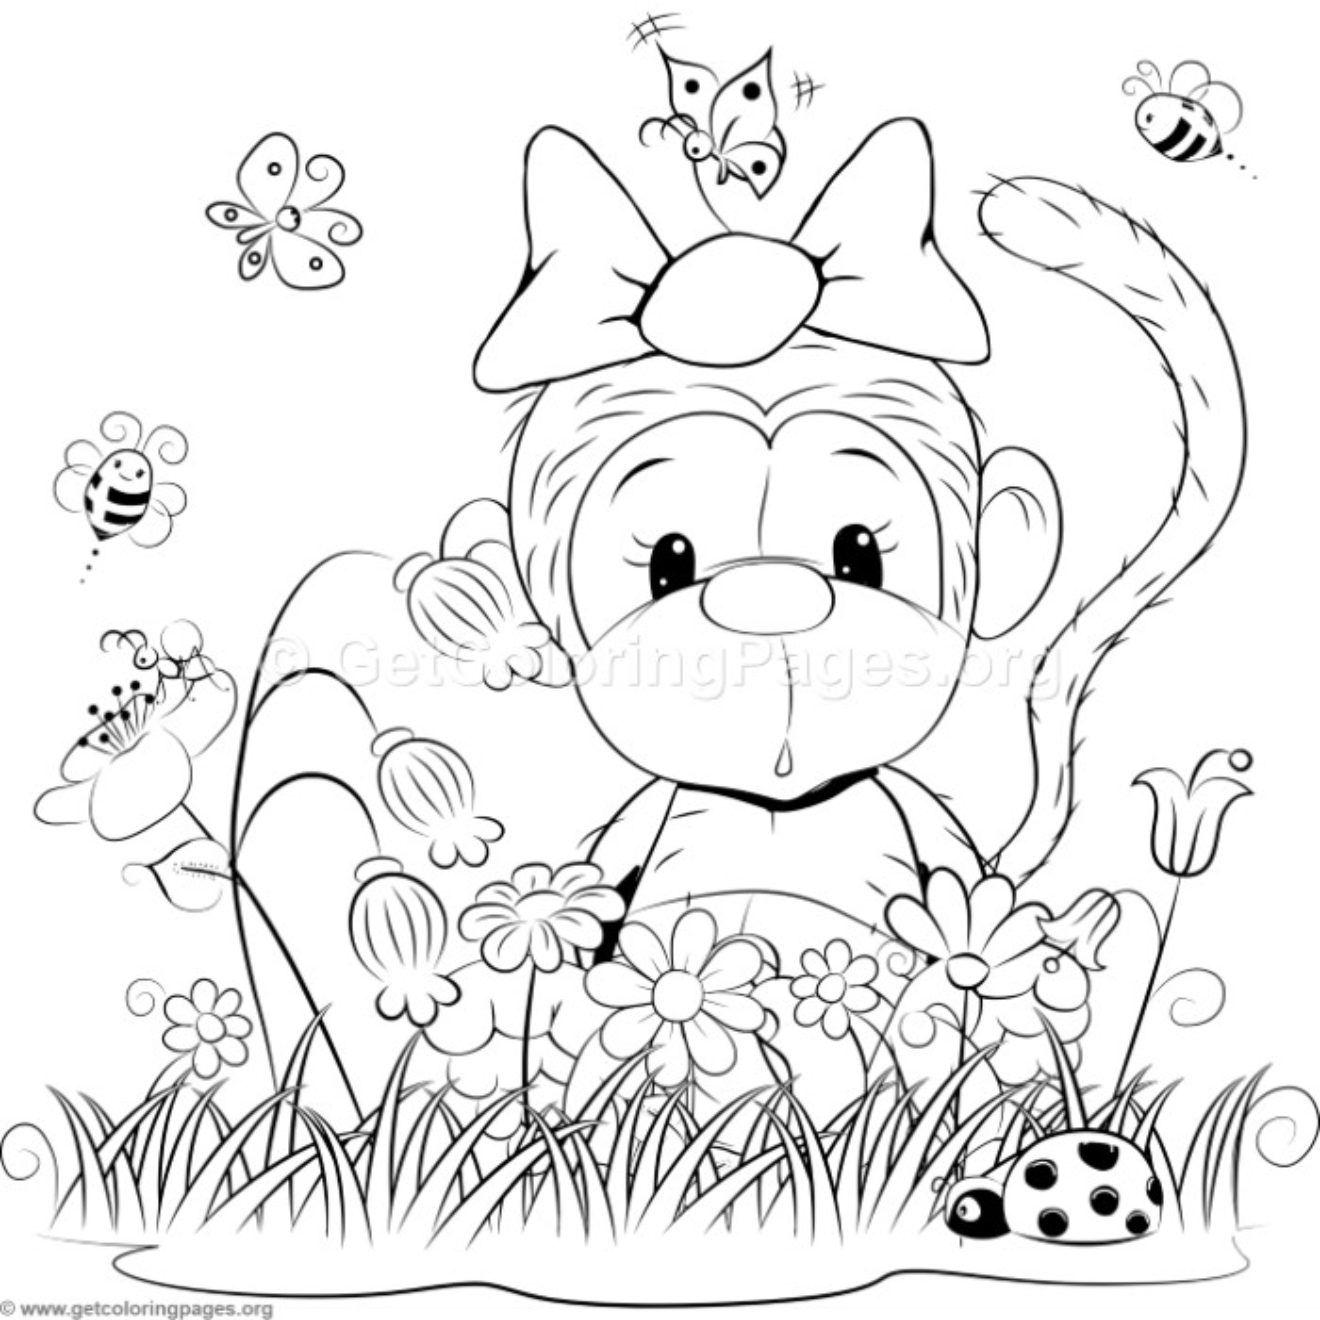 Cute Monkey 3 Coloring Pages | Coloring pages | Pinterest | Monkey ...